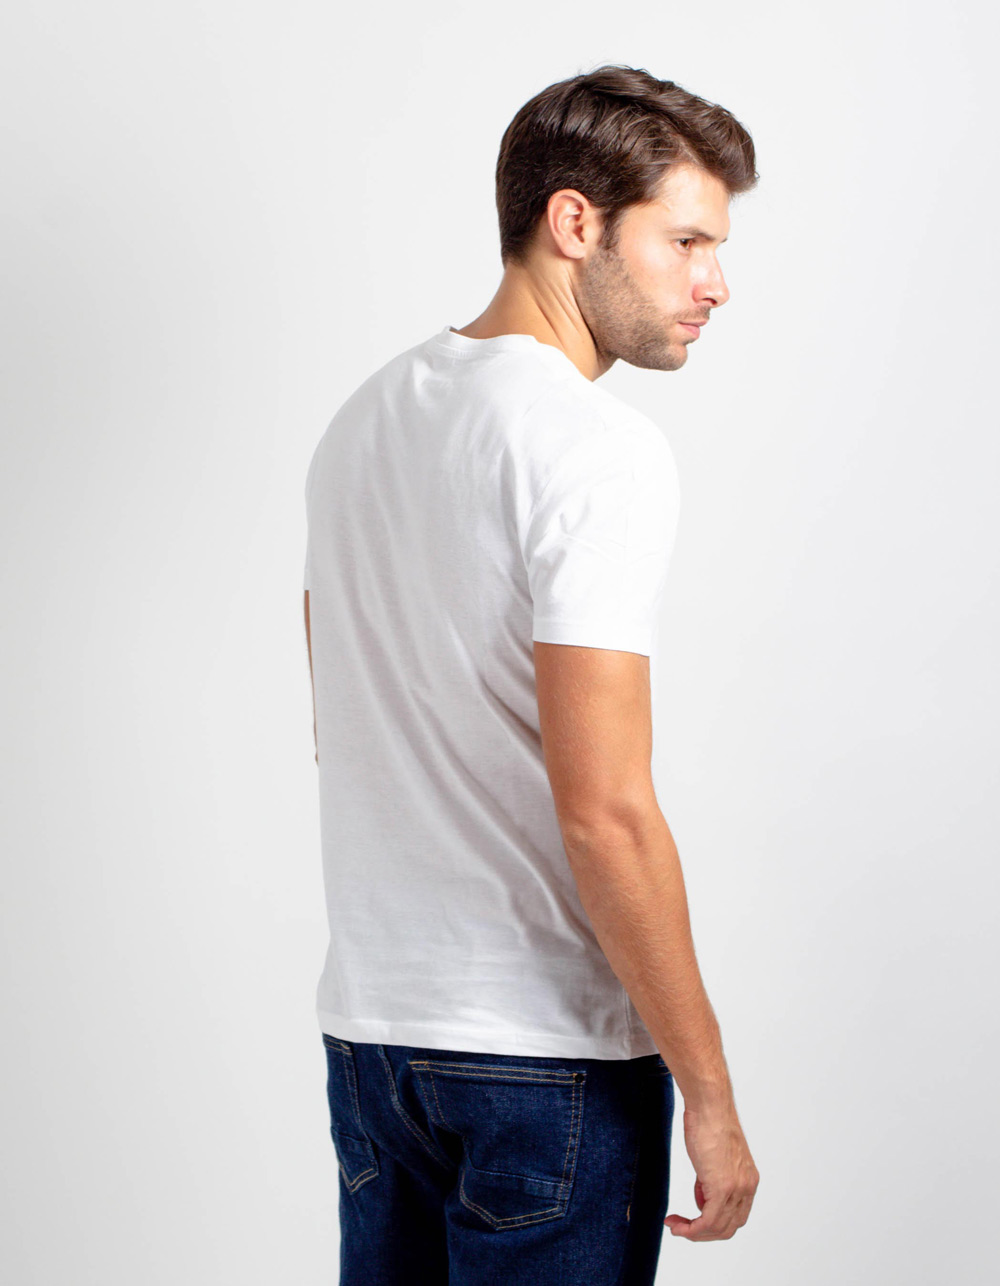 White short sleeve plain t-shirt - Backside